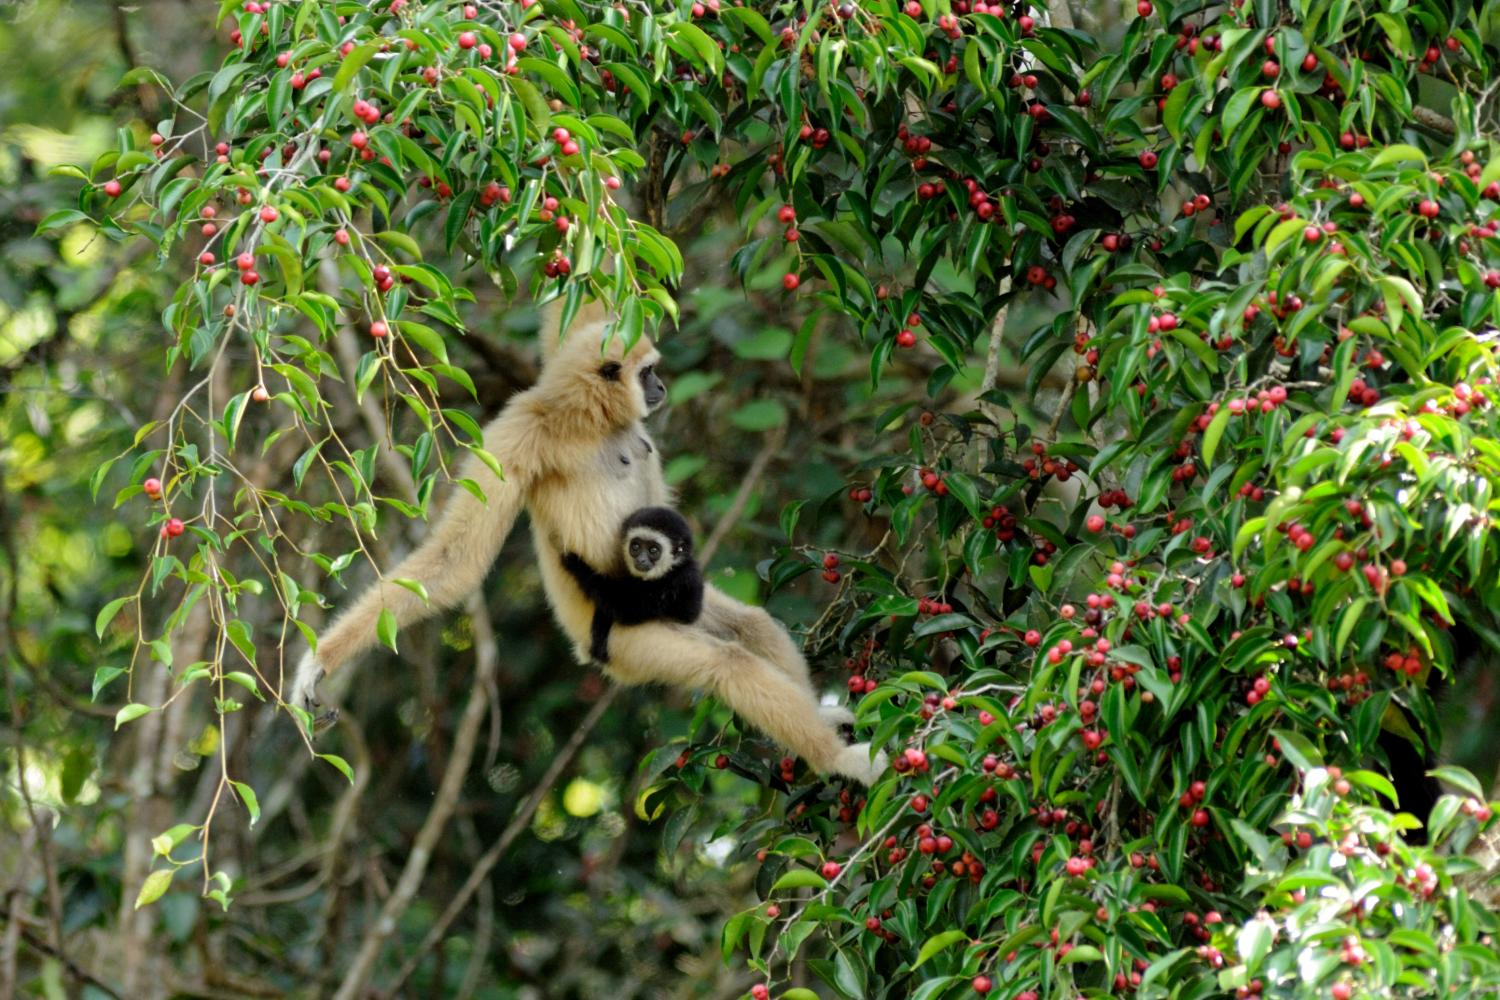 A white-handed gibbon with her young offspring. (Photo: Kulpat Saralamba)